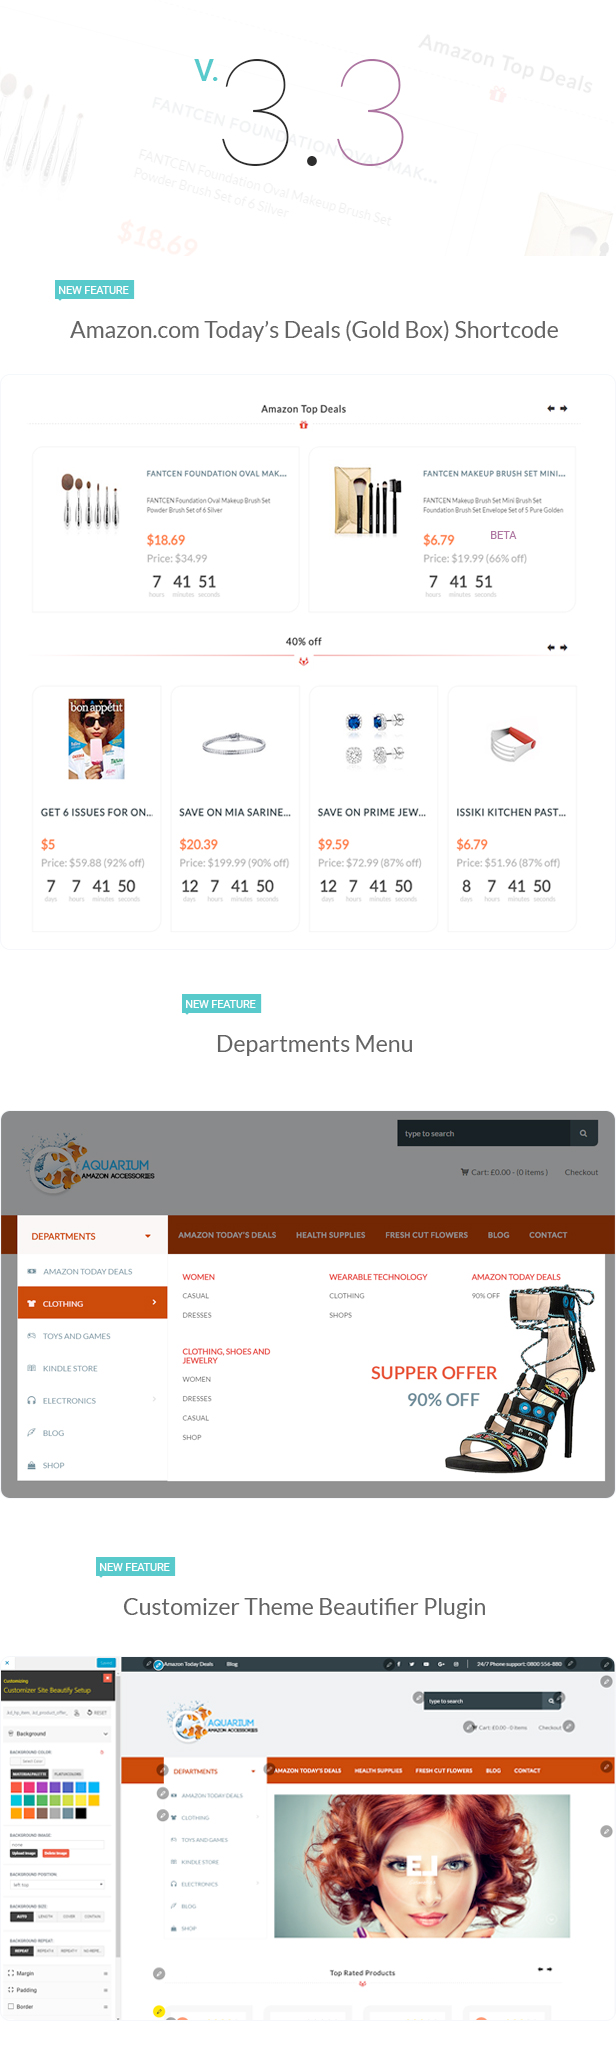 Kingdom - WooCommerce Amazon Affiliates Theme - 4 Kingdom - WooCommerce Amazon Affiliates Theme - kingdom3 - Kingdom – WooCommerce Amazon Affiliates Theme